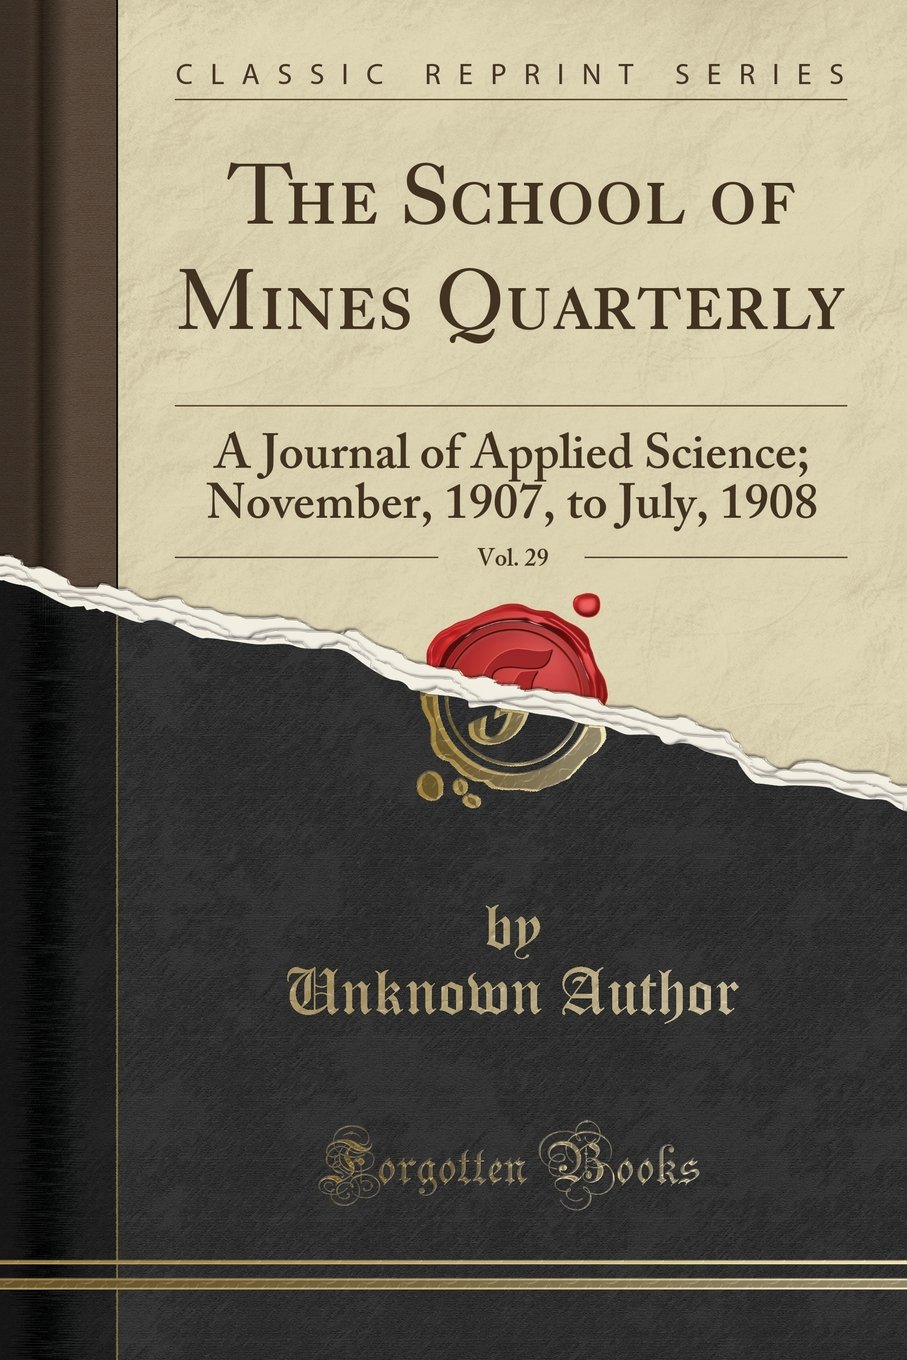 The School of Mines Quarterly, Vol. 29: A Journal of Applied Science; November, 1907, to July, 1908 (Classic Reprint) pdf epub